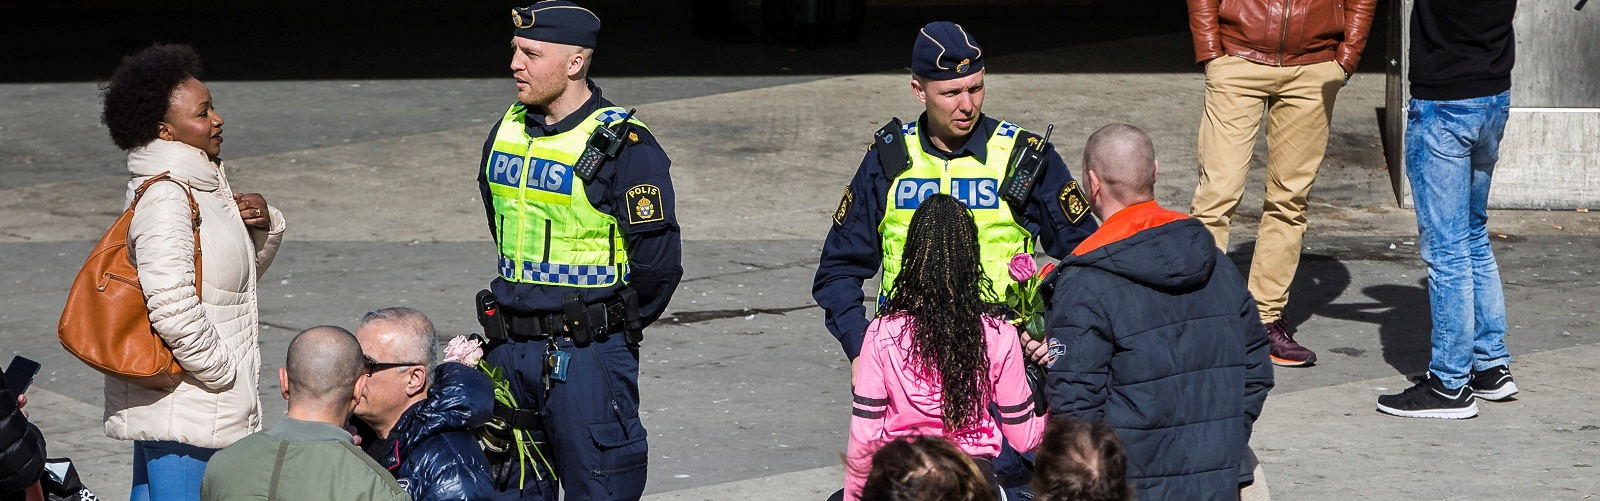 In the days after the attack Swedes have given flowers to police (Photo: Michael Campanella/Getty Images)